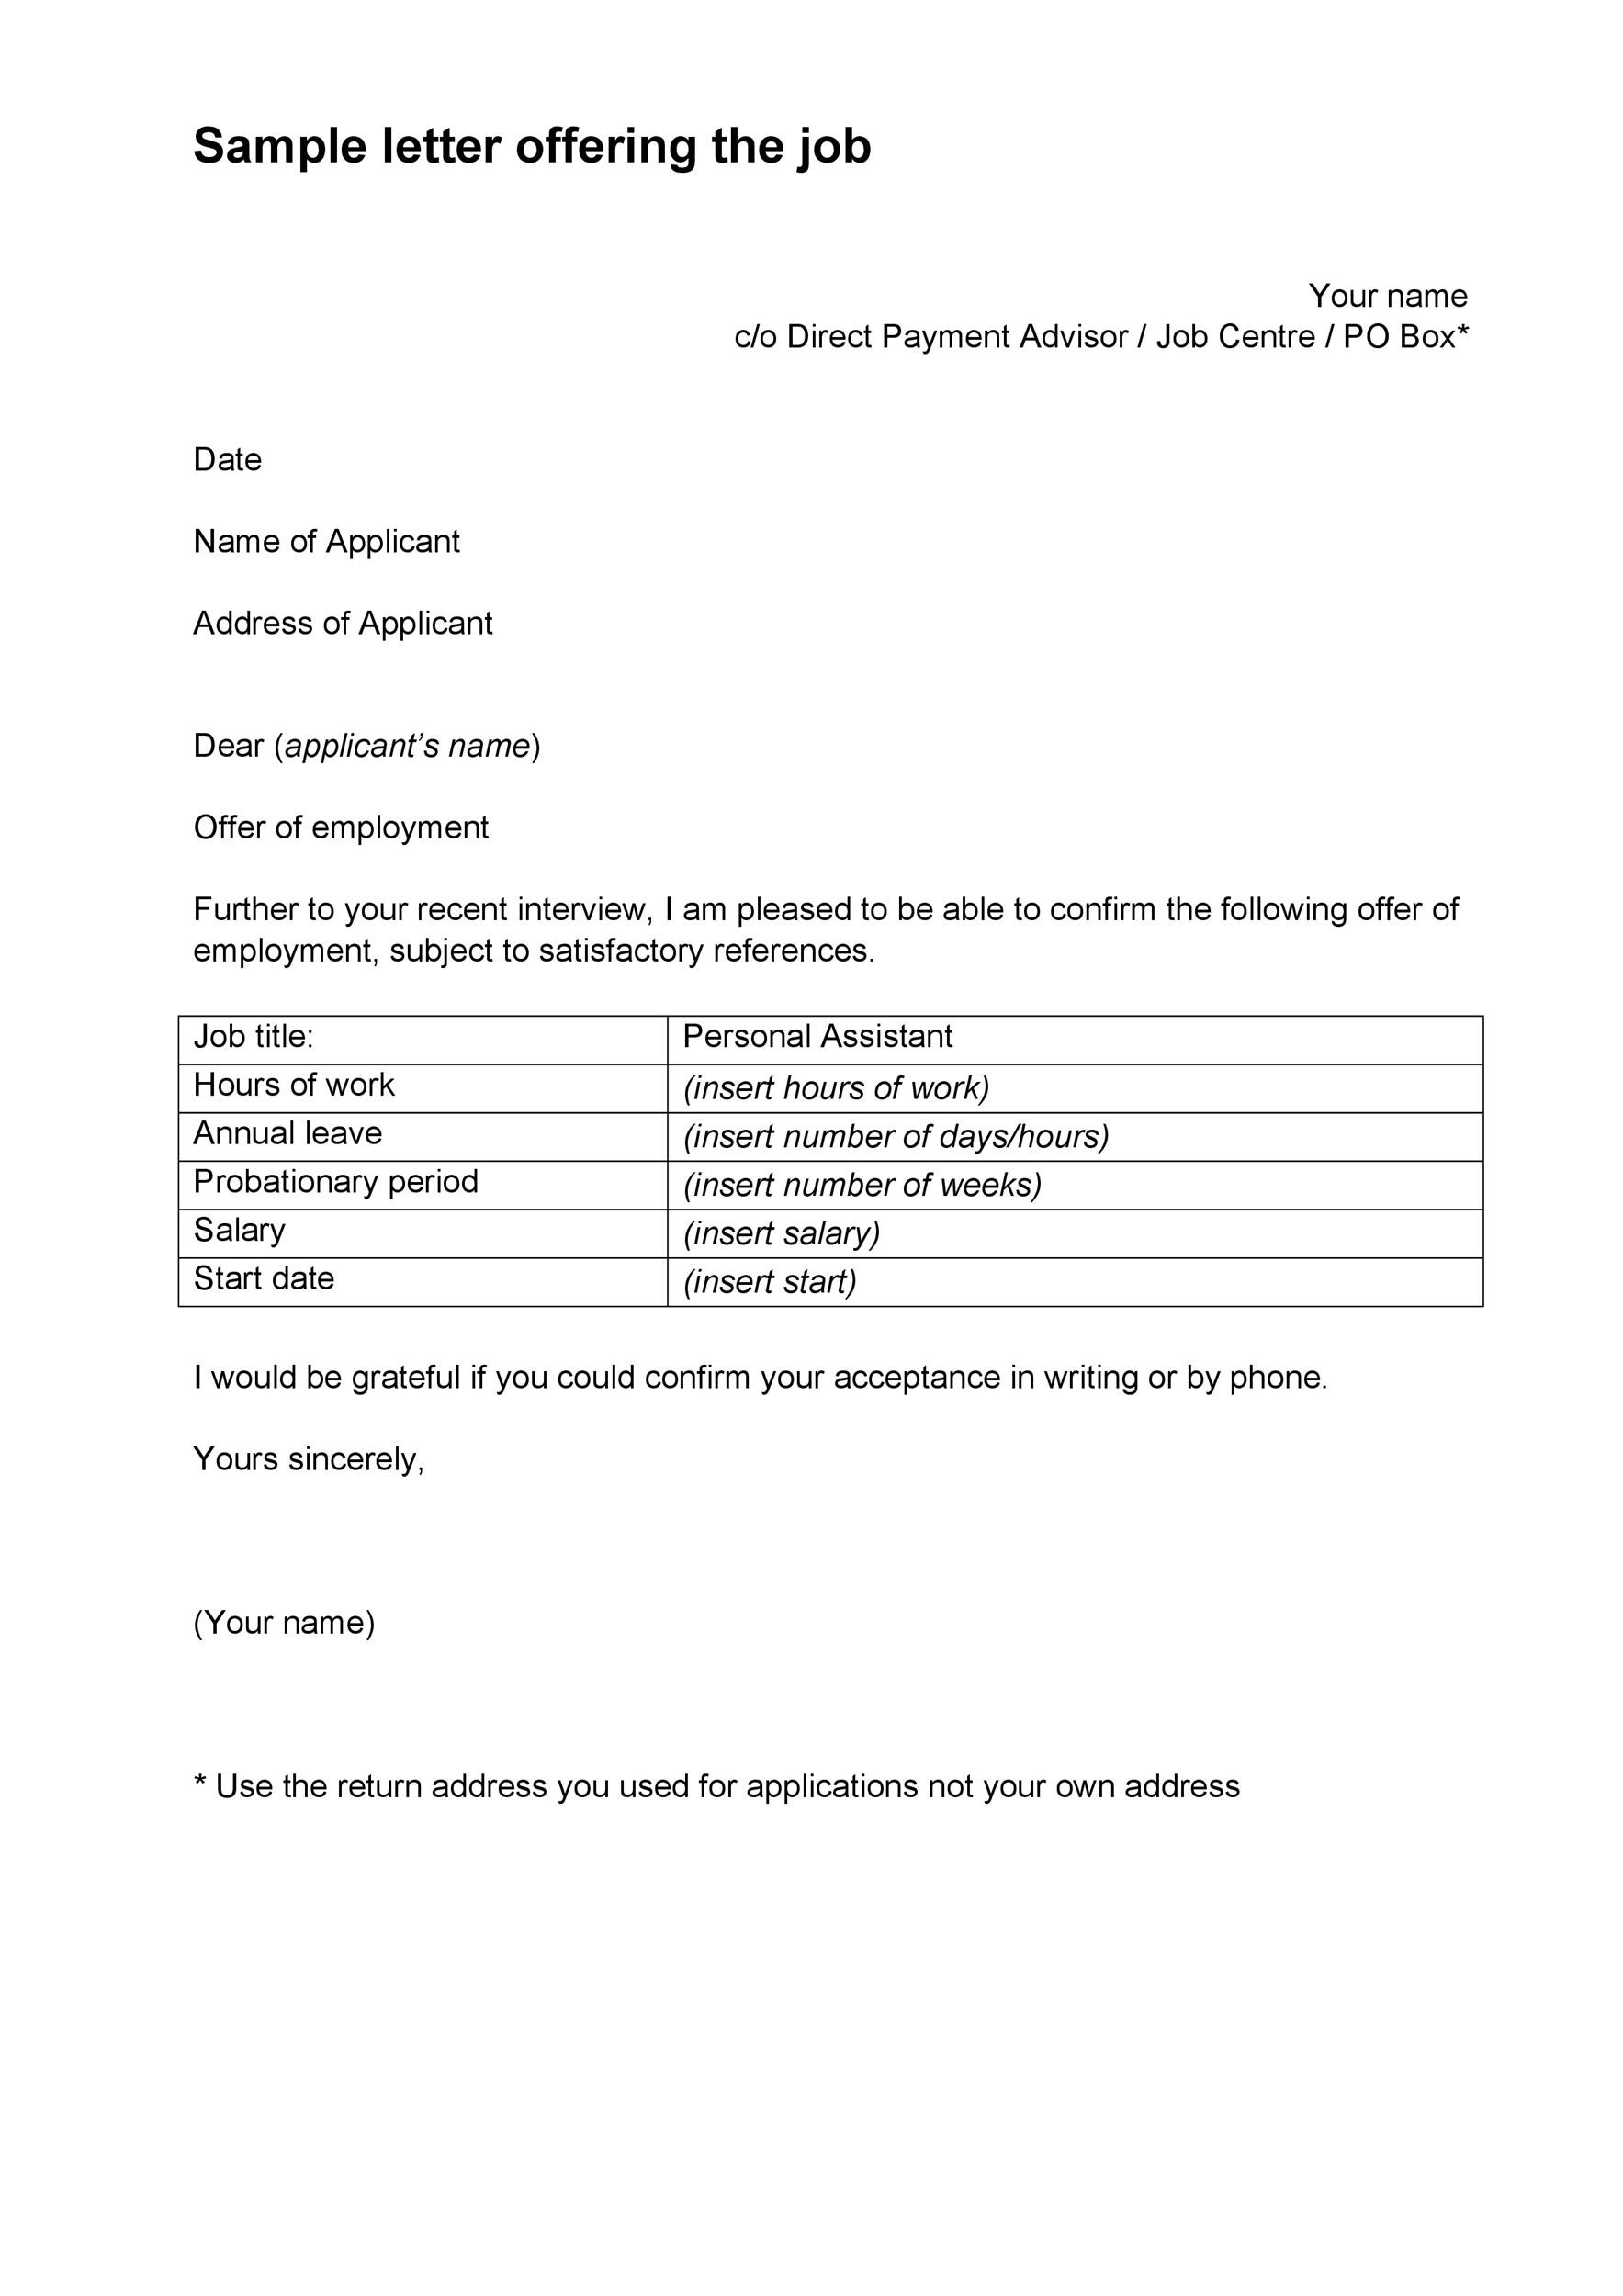 fantastic offer letter templates employment counter offer job offer letter 37